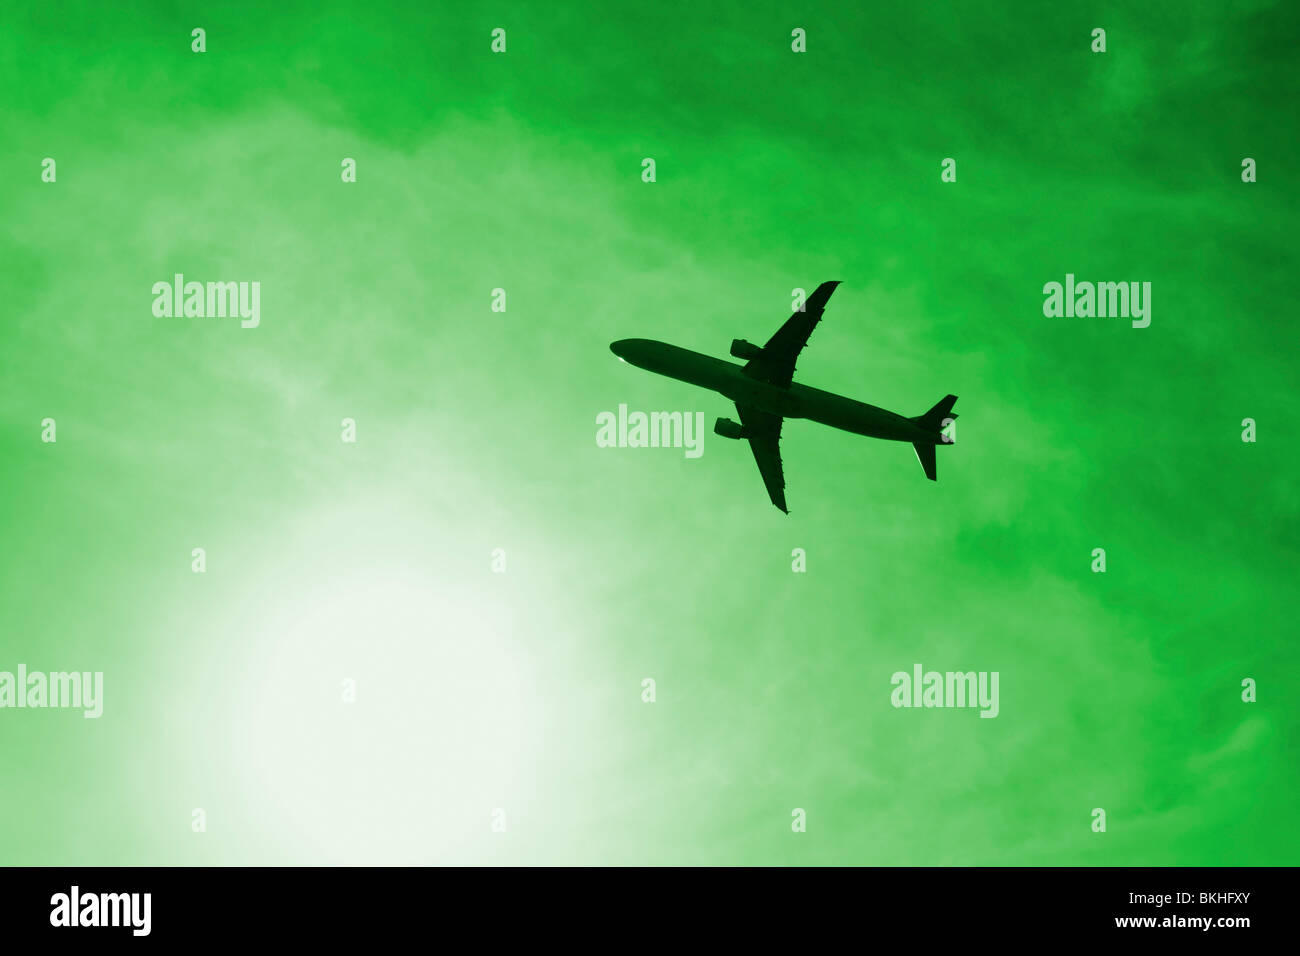 Plane near sun against green sky. Could be used to depict pollution, air travel, carbon footprint... - Stock Image